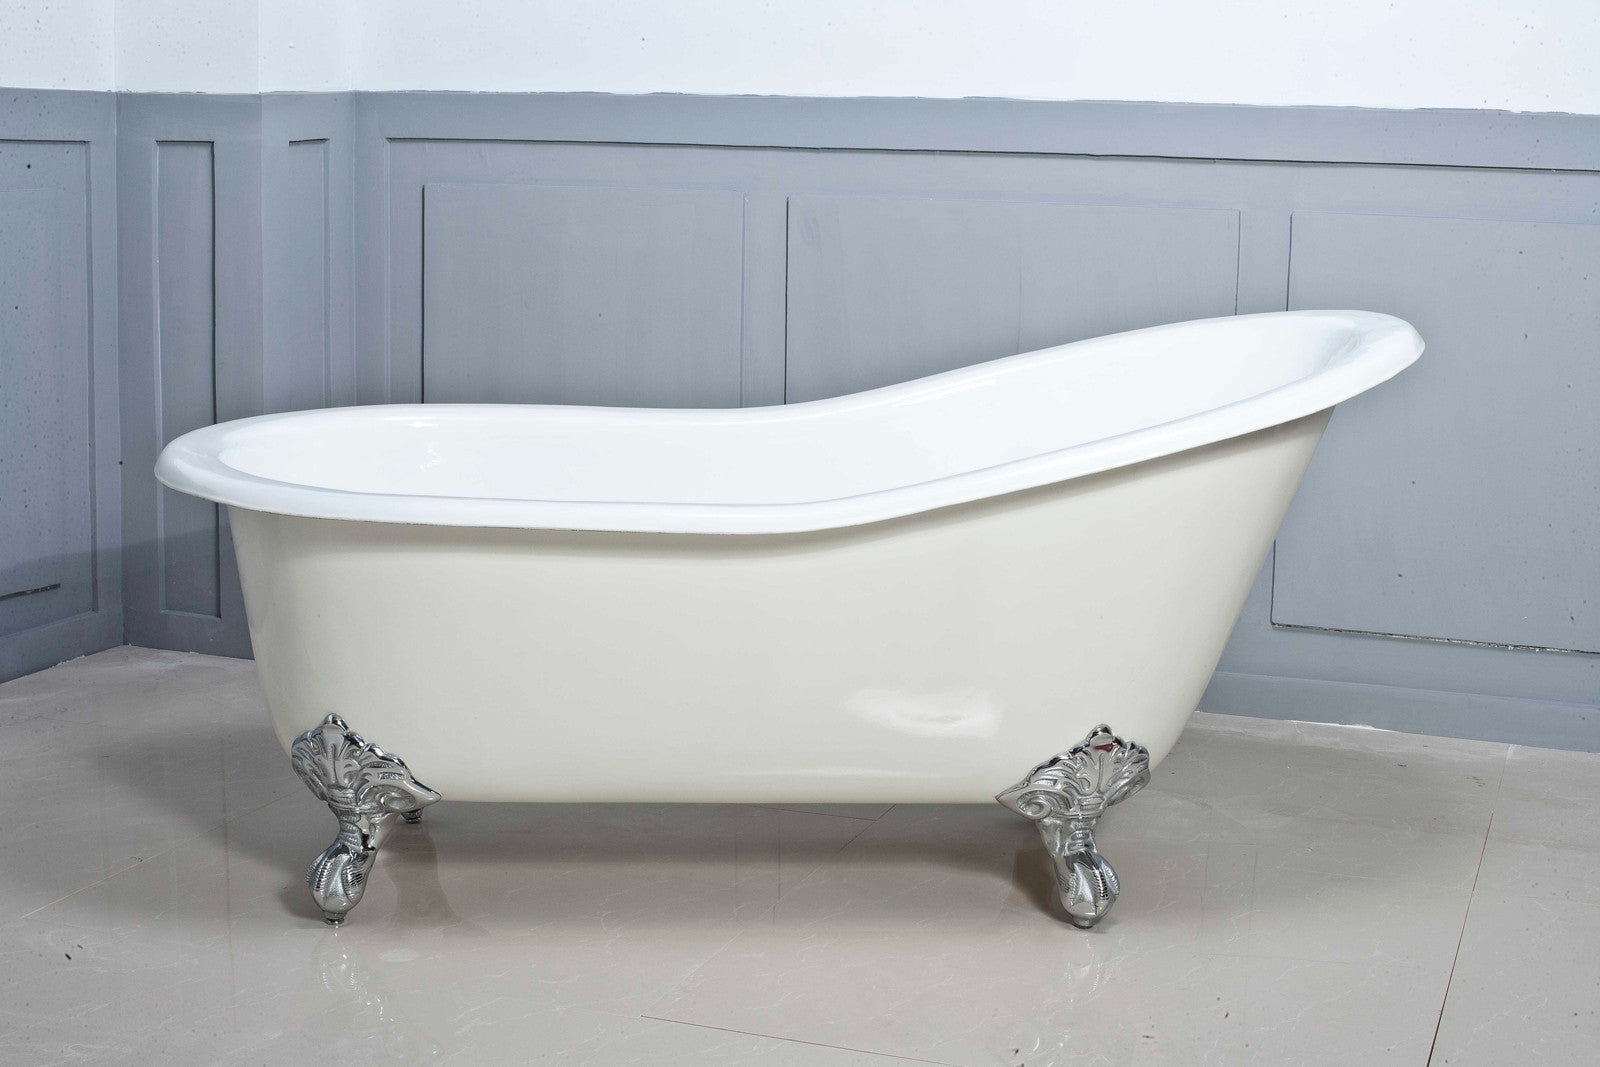 Slipper 1560 or 1700 Cast Iron bath – Olde English Tiles™